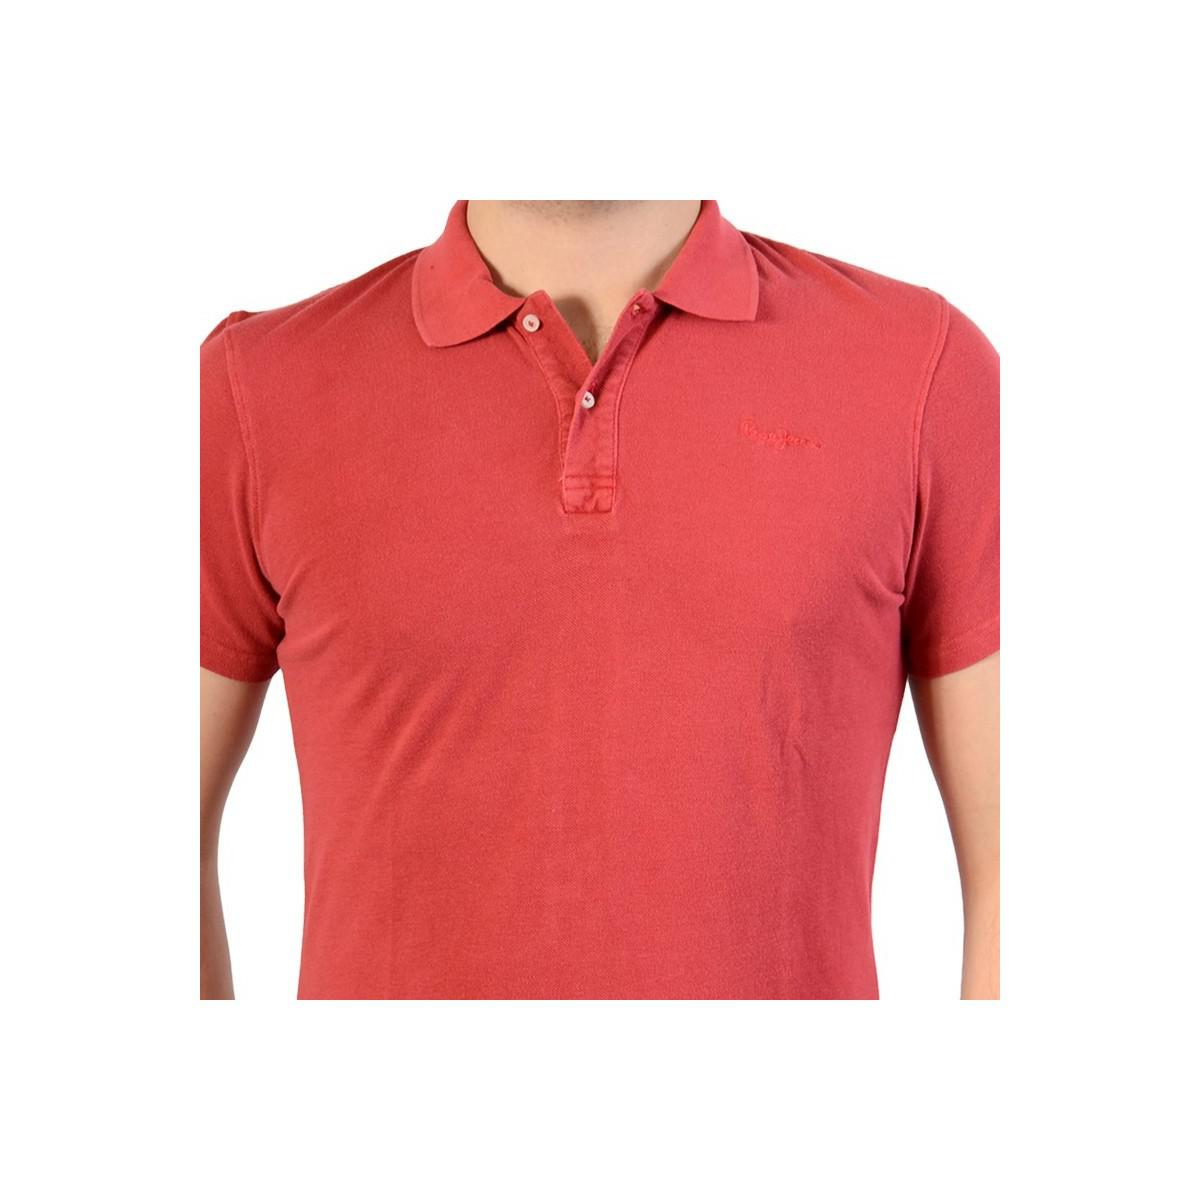 Pepe Jeans Polo Shirt Ernest New Pm540683 Cardinal Red 237 Mens